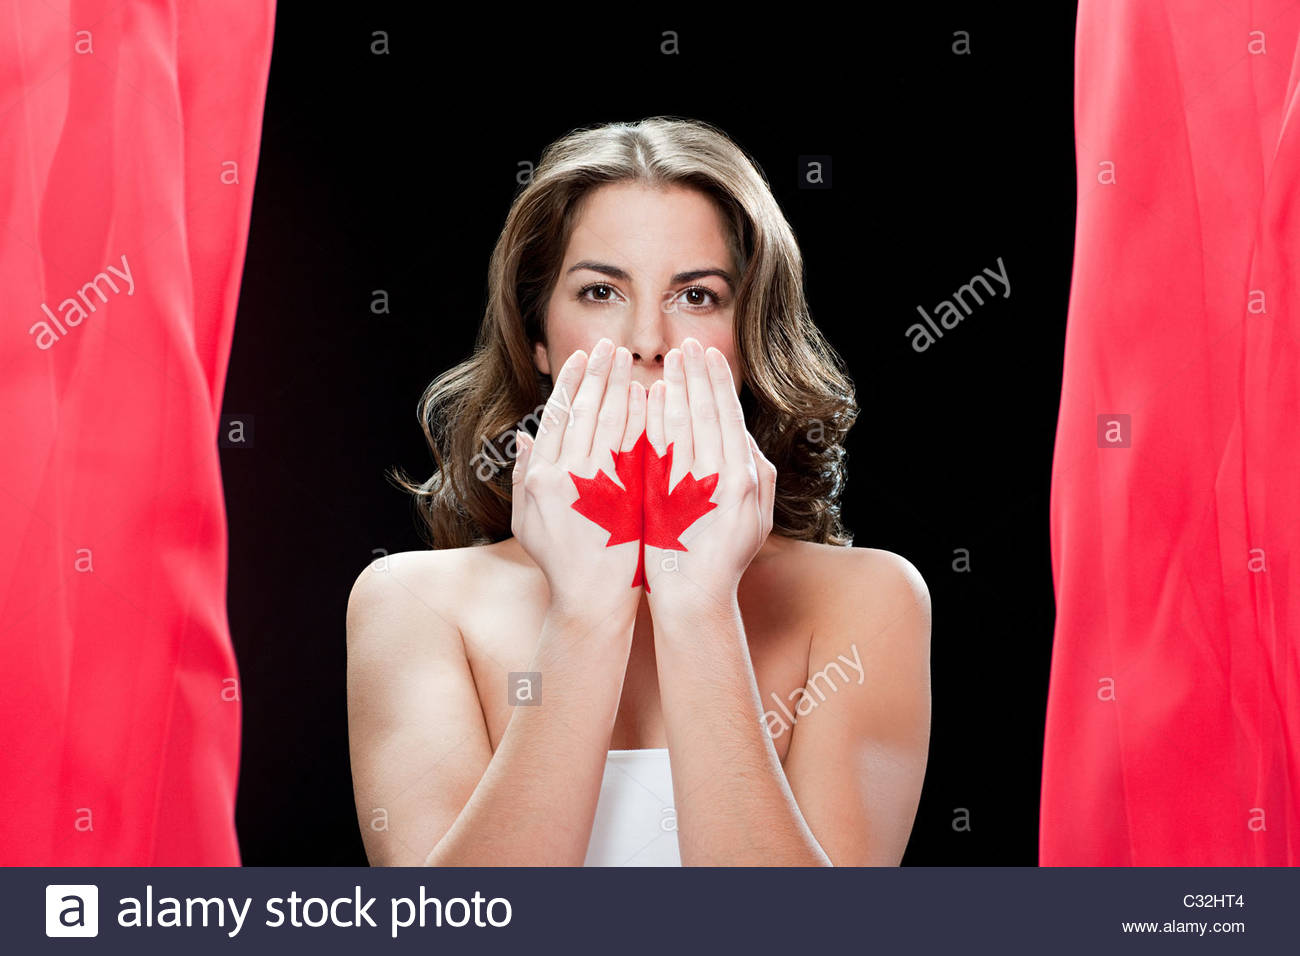 Woman with maple leaf painted on hands - Stock Image